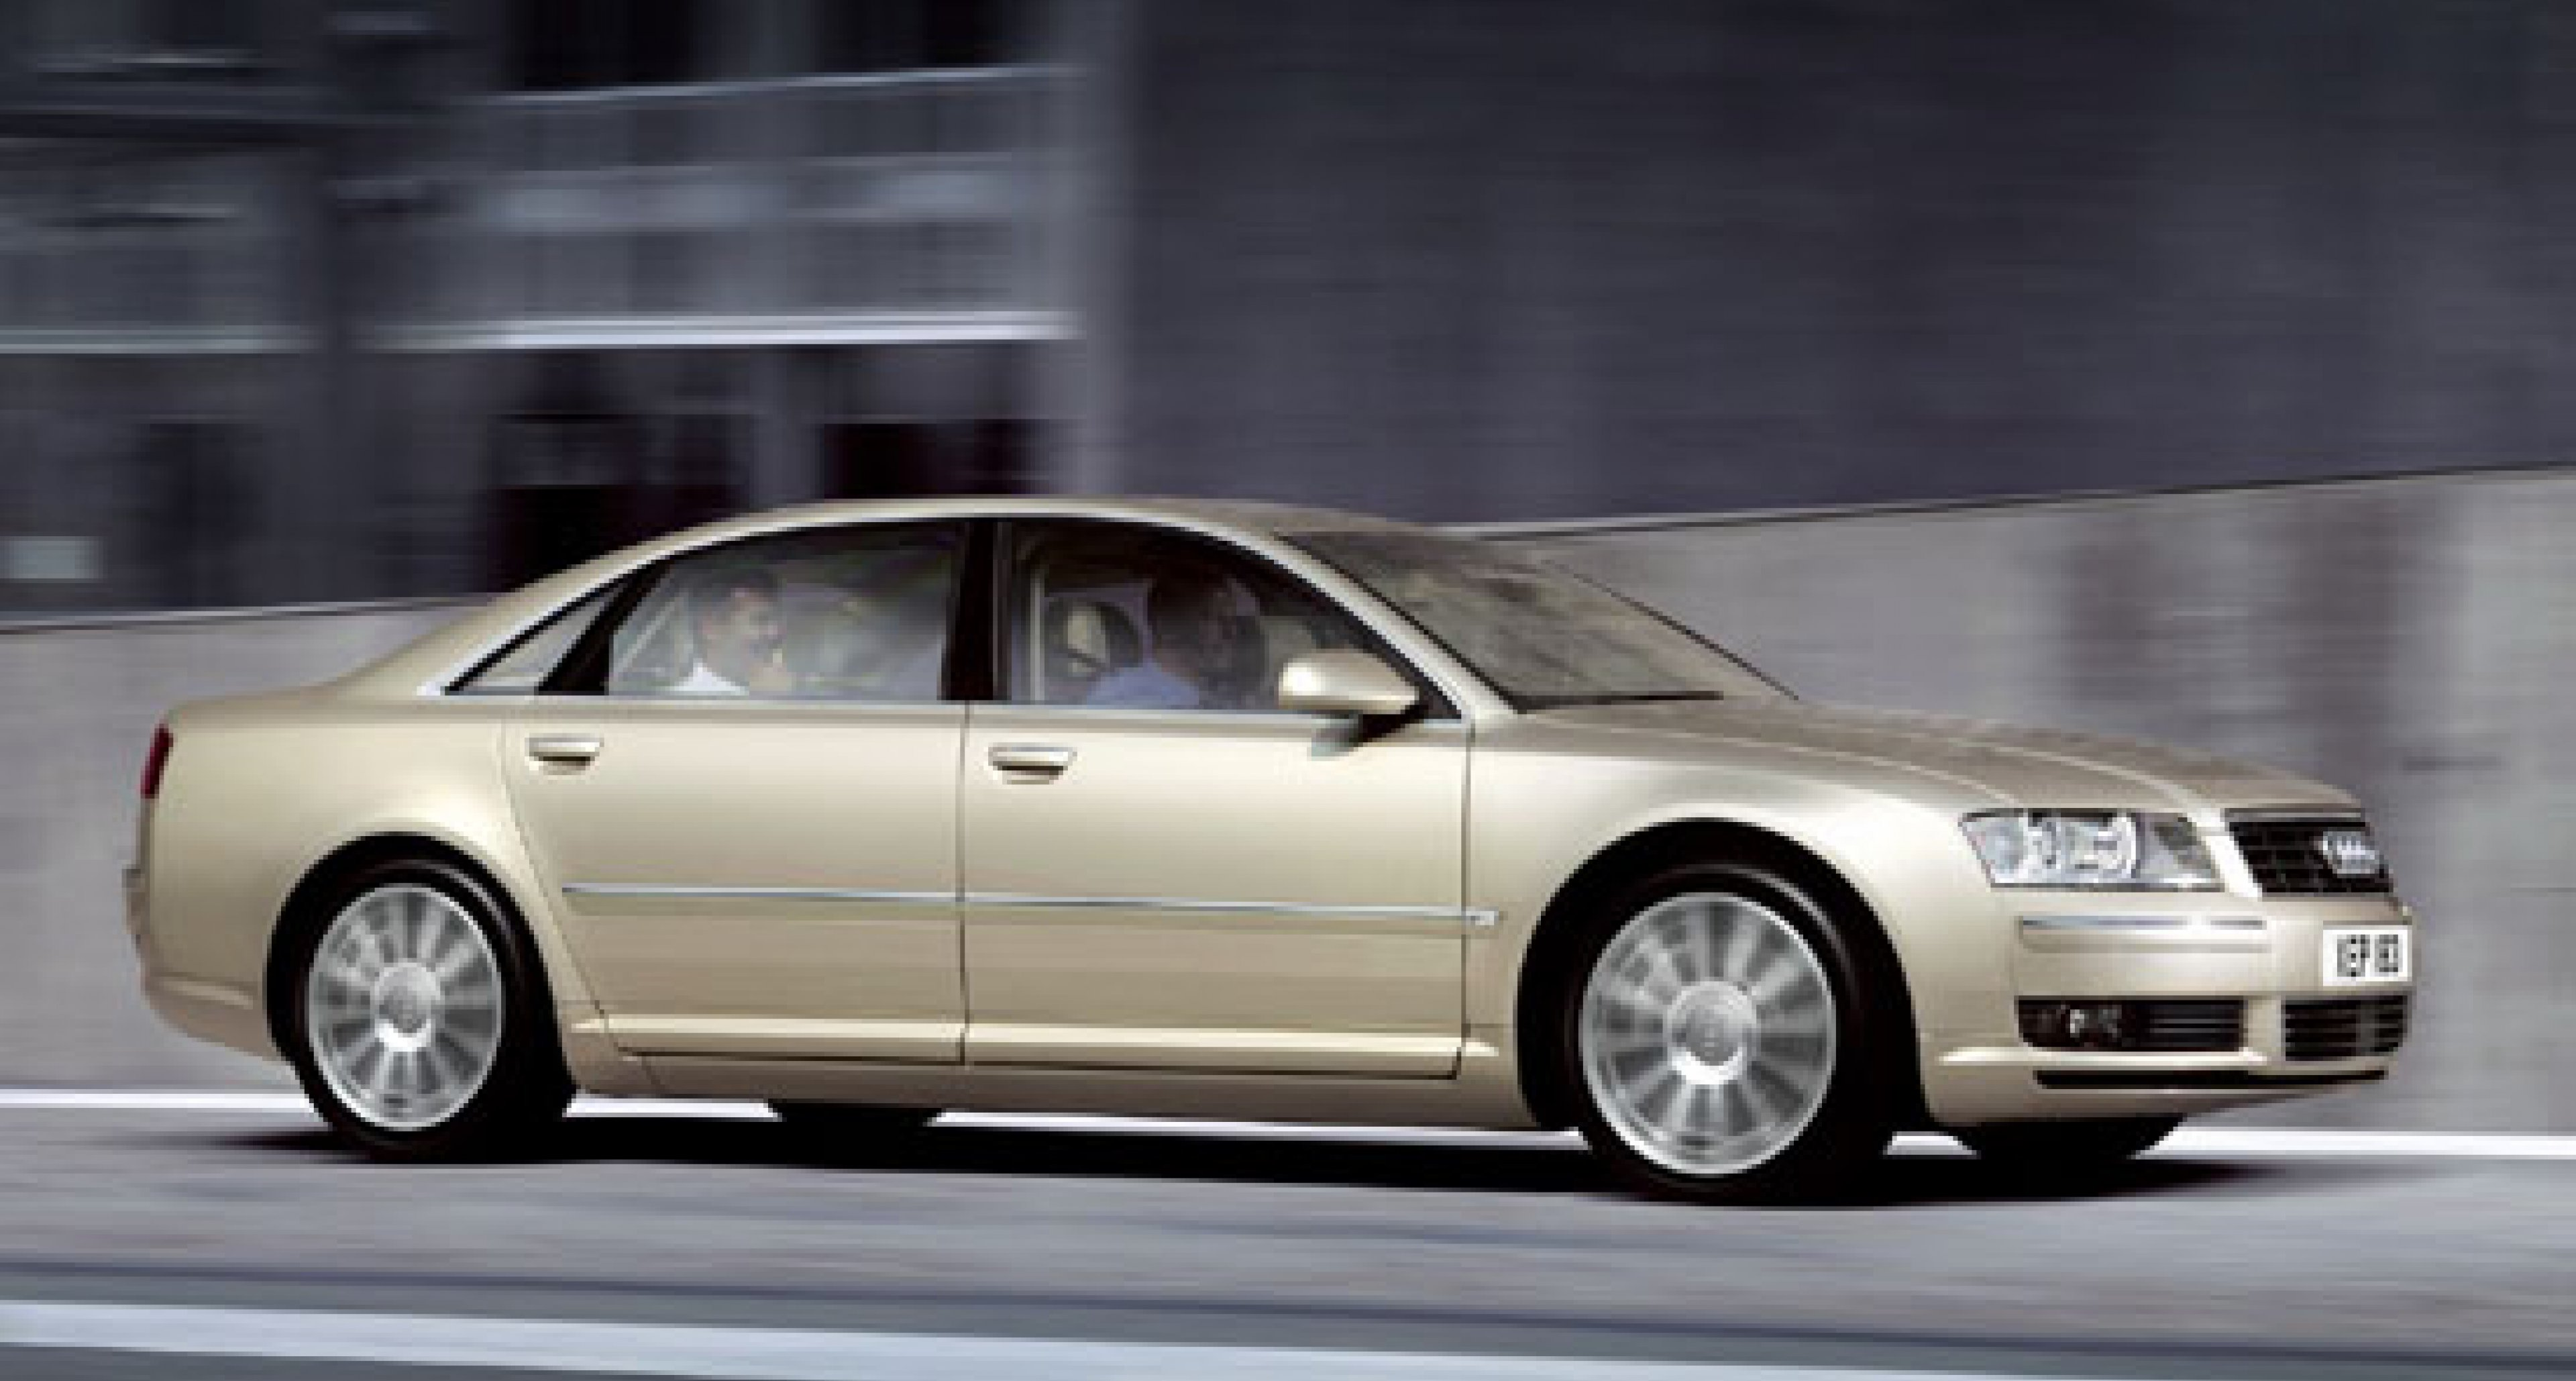 New Audi A8 3.0 Multitronic announced for the UK